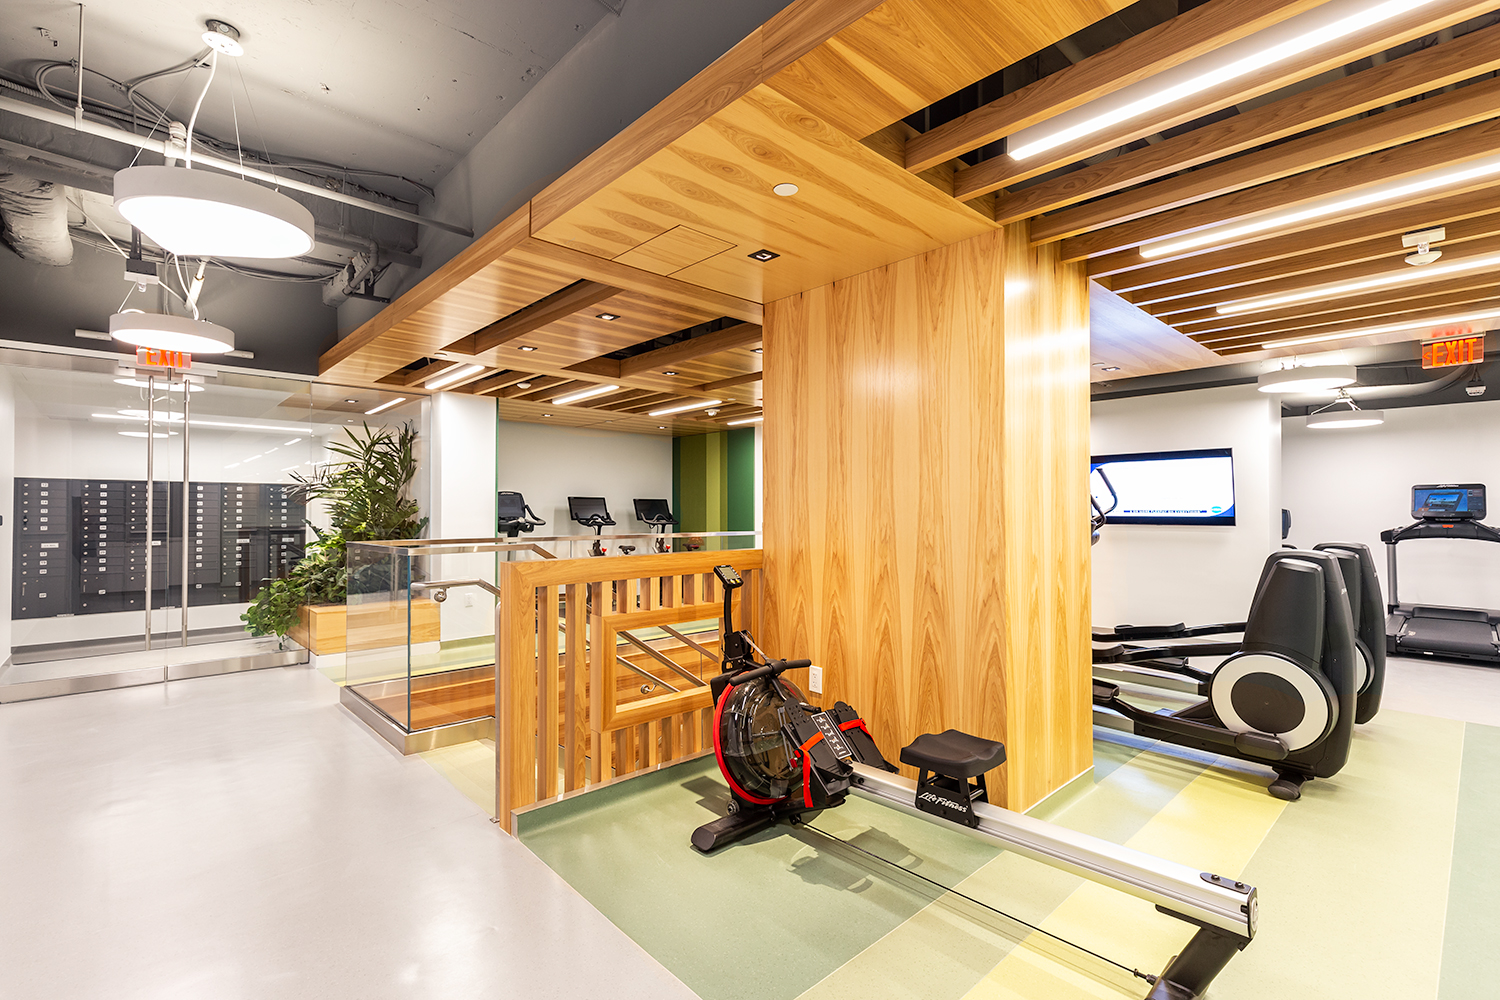 http://www.martoneconstruction.com/13th-st-fitness-center/